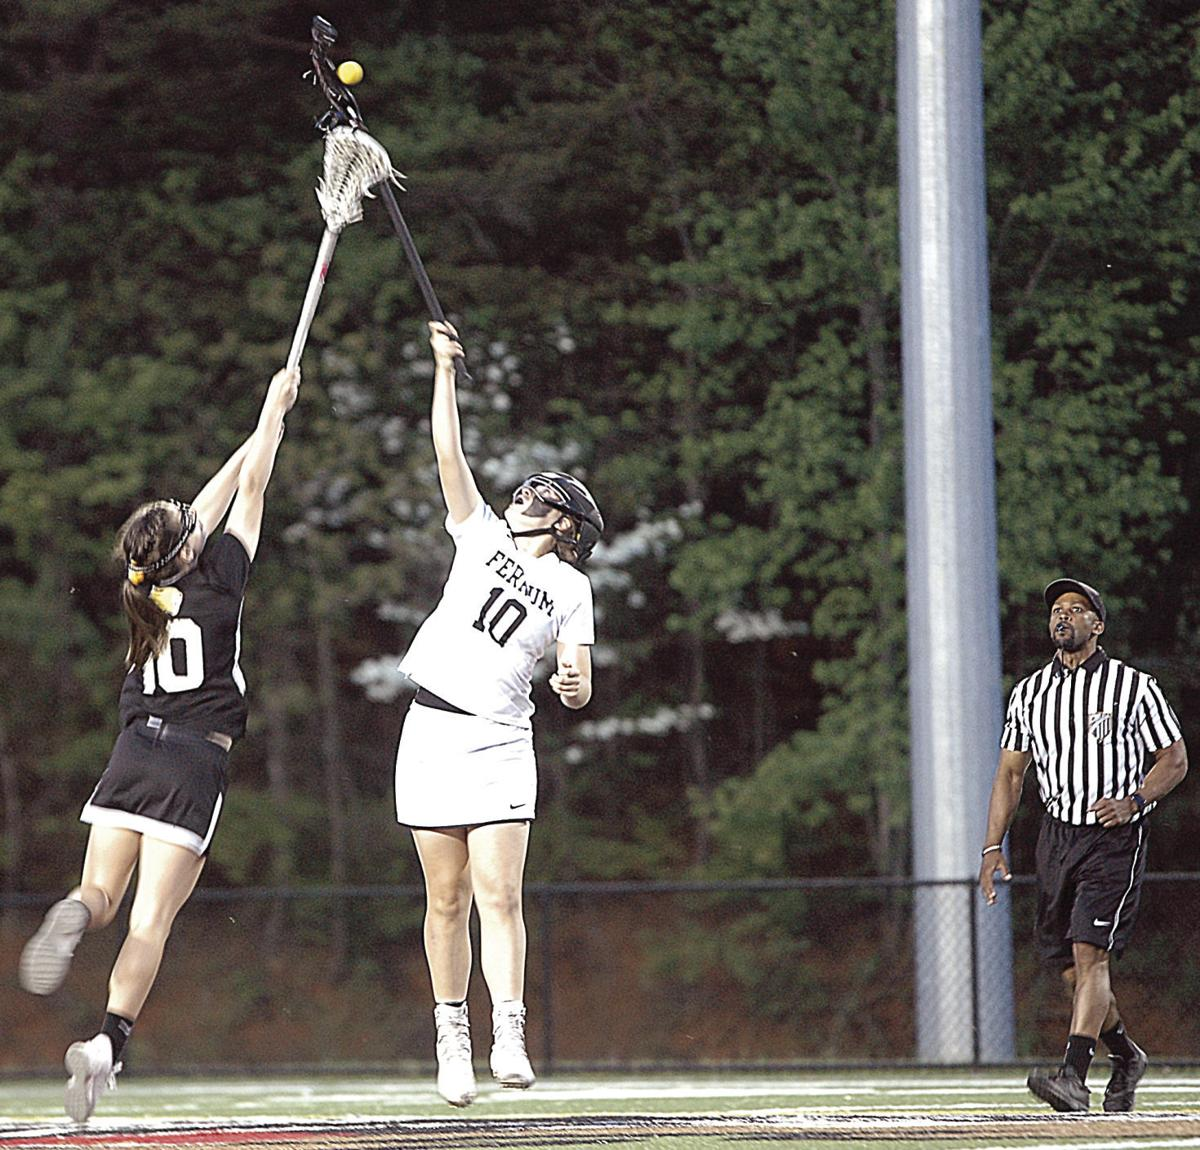 WOMEN'S COLLEGE LACROSSE: Ferrum claims first ODAC win with wire-to-wire victory over Randolph